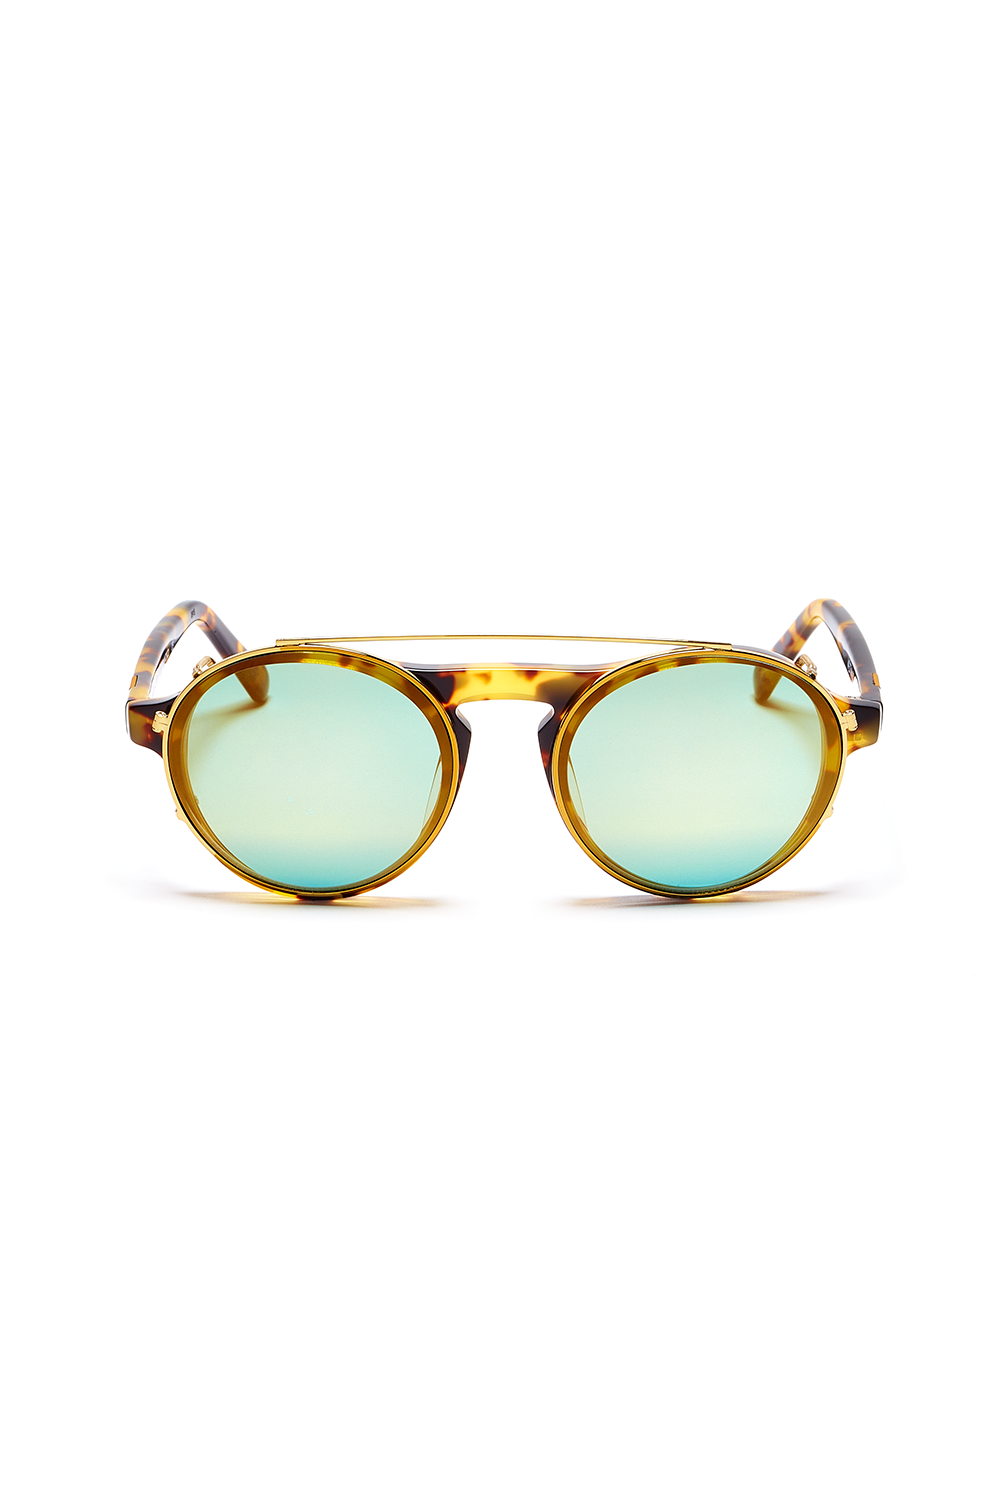 Dyad 6 Frame with Golden Aqua Lenses & Honey Aluminum Inlay